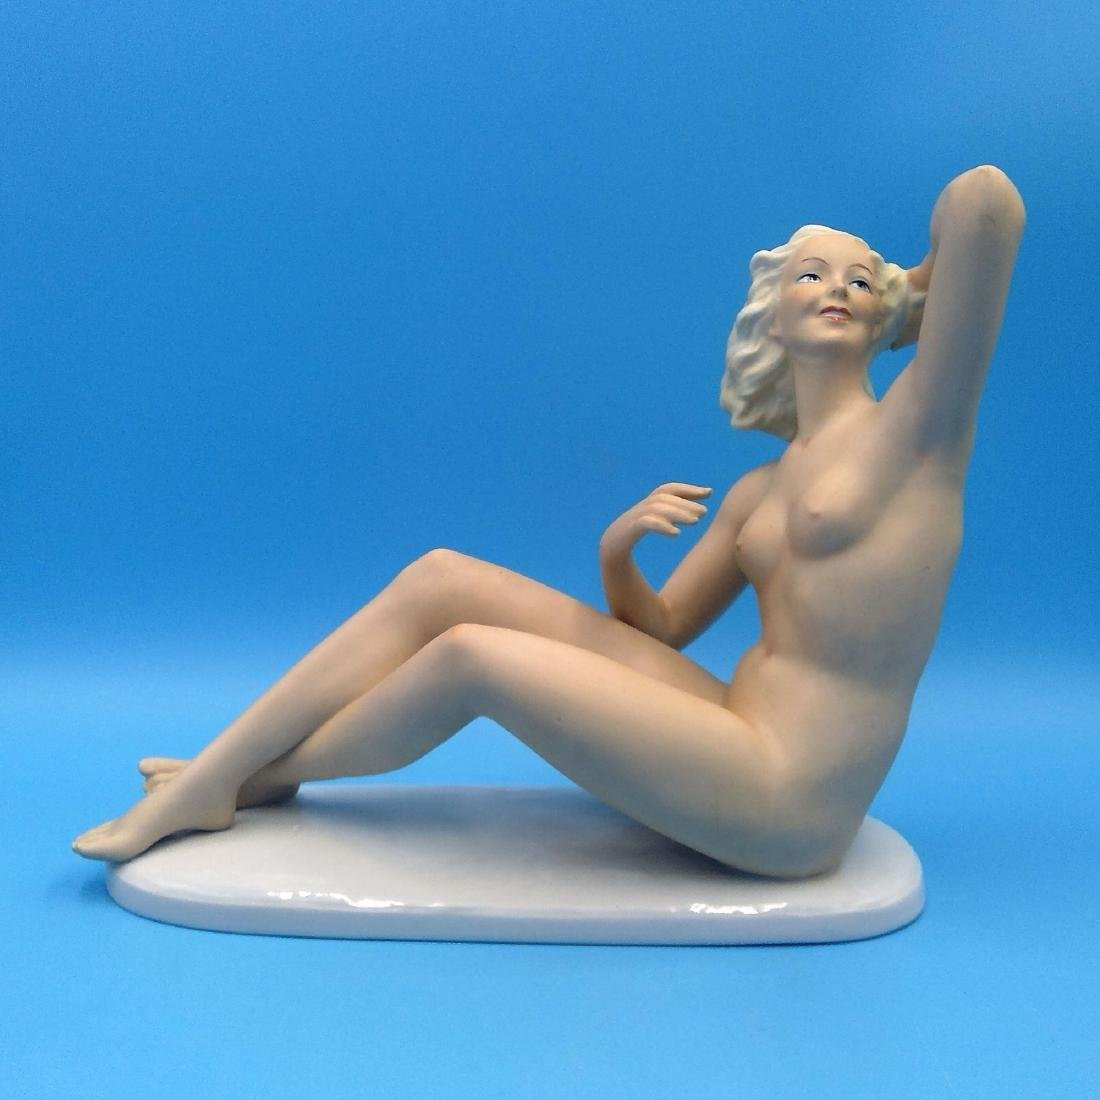 LARGE WALLENDORF ART DECO NUDE GERMAN FIGURINE